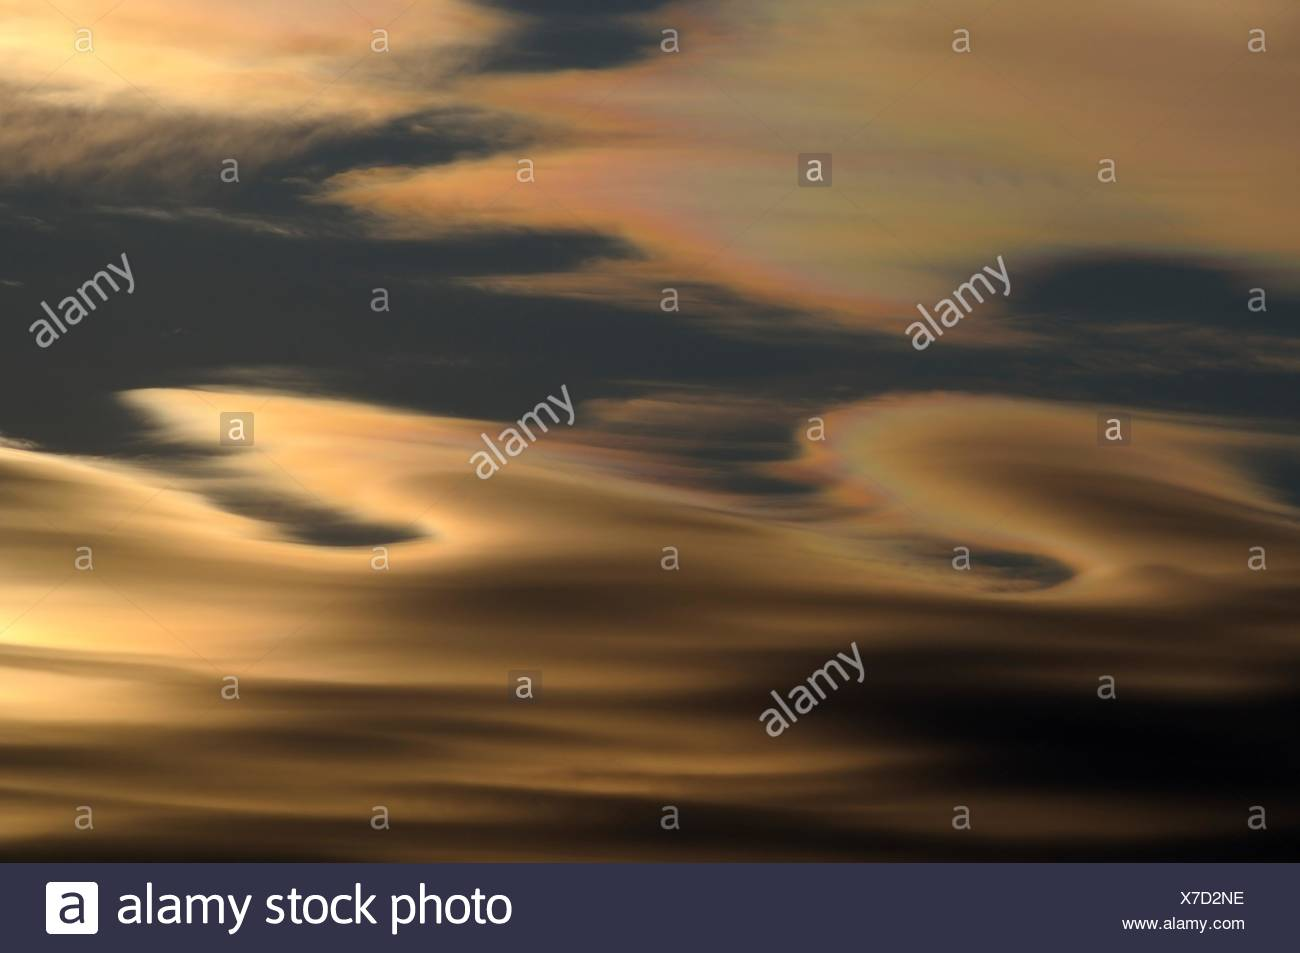 Altocumulus lenticularis clouds with rainbow colors at sunset - Stock Image